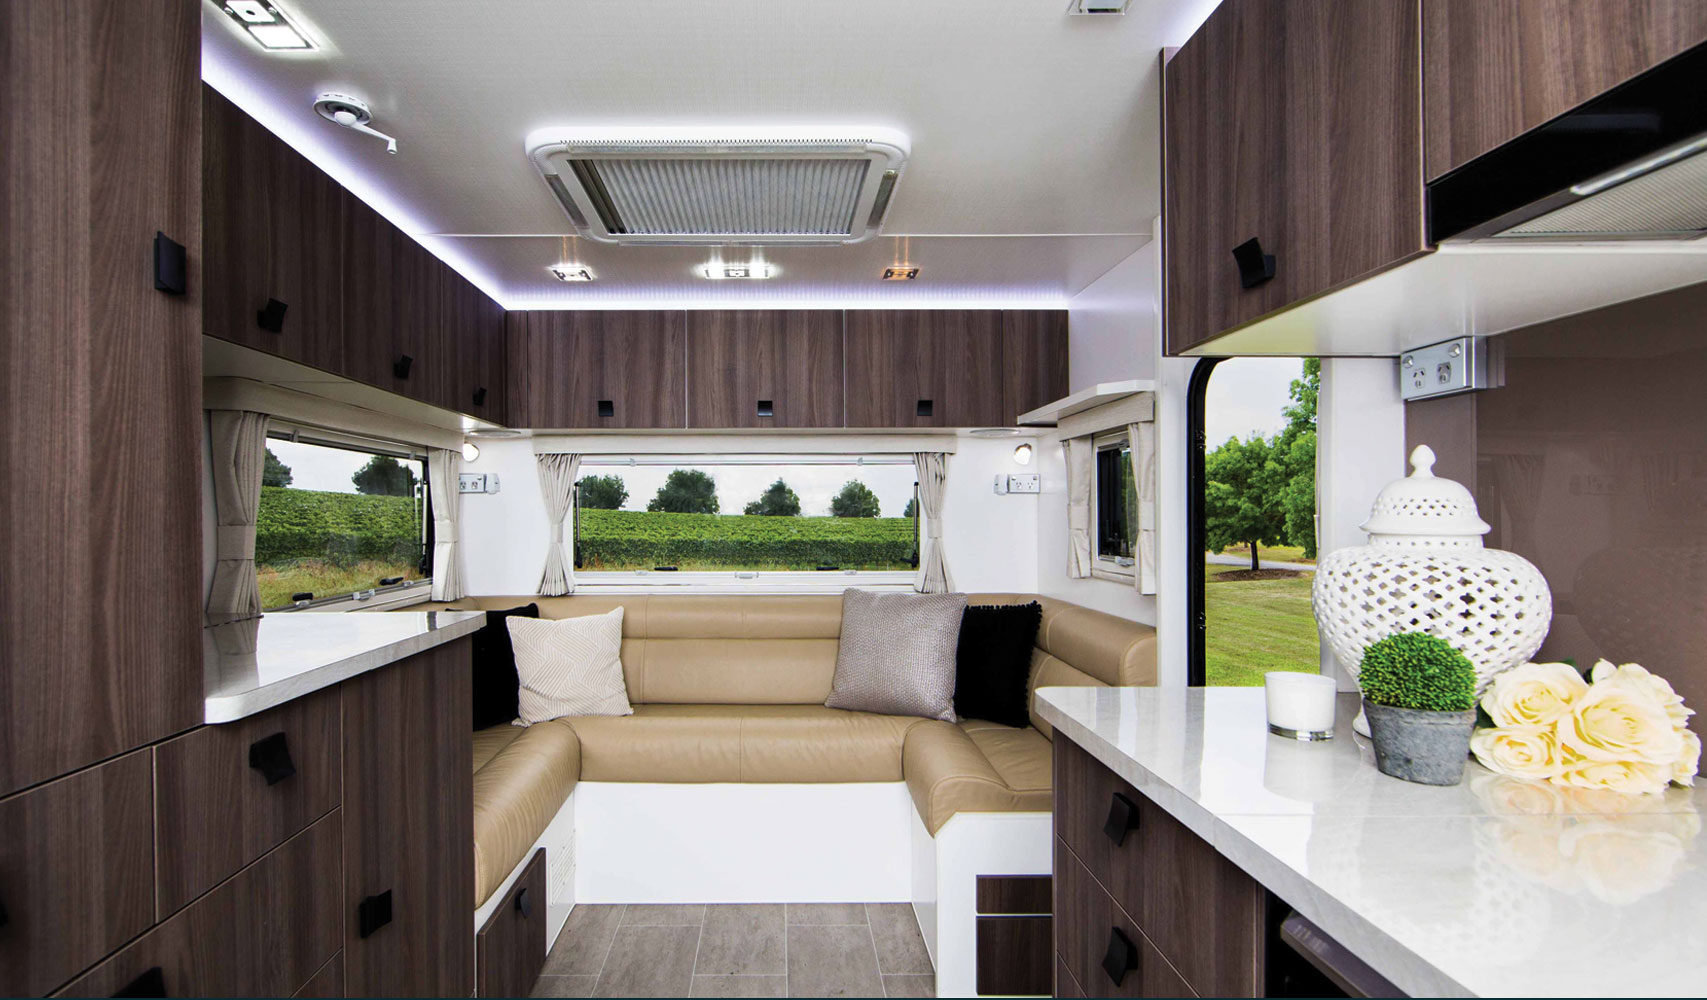 Evernew Caravans By Craftsmen Traveller Caravan Wiring Diagram At We Have A Passion For Creating Amazing Travel Experiences And The Memories That Go Along Side Want To Enable Our Owners Experience All